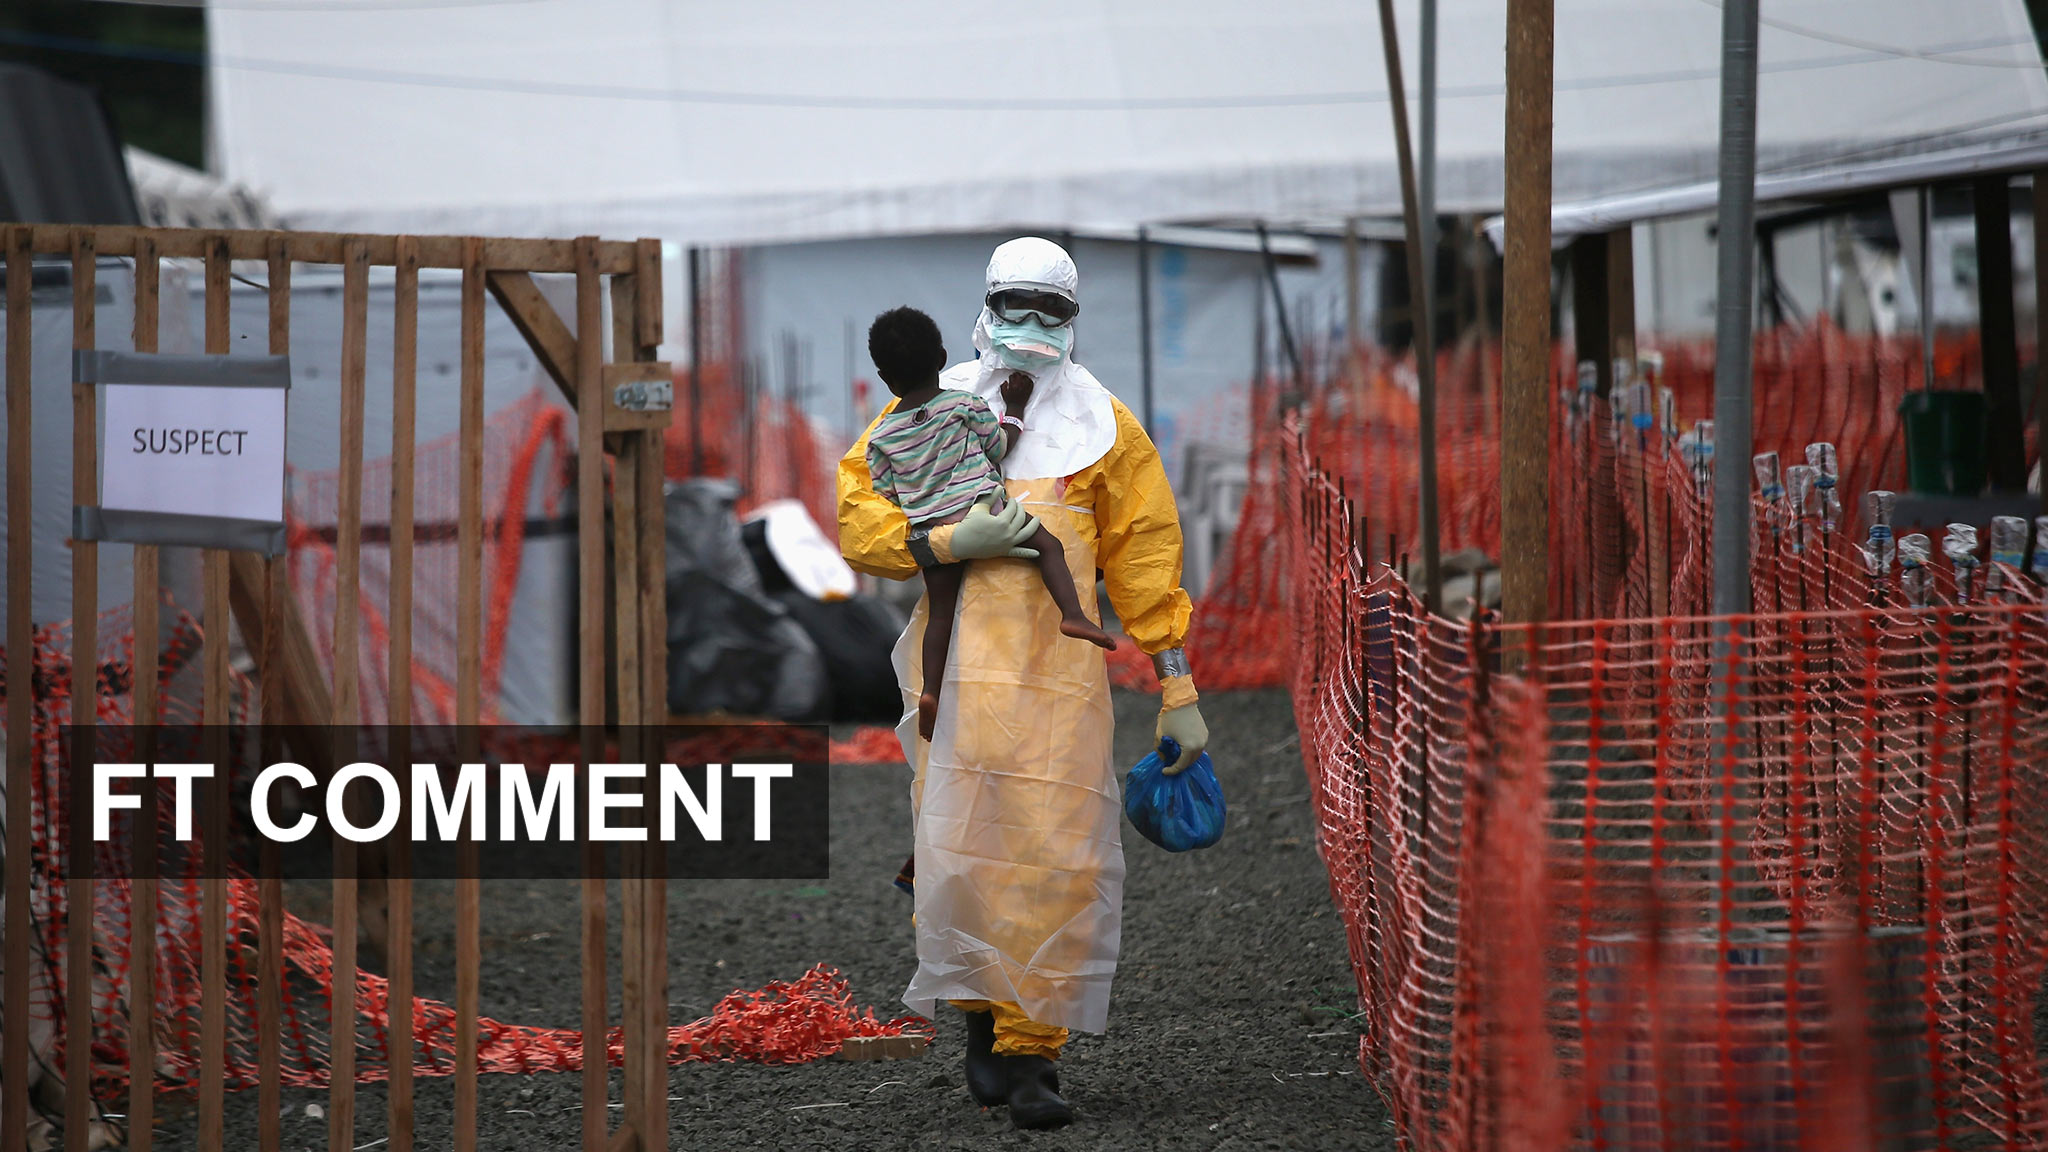 Financing the fight against pandemics